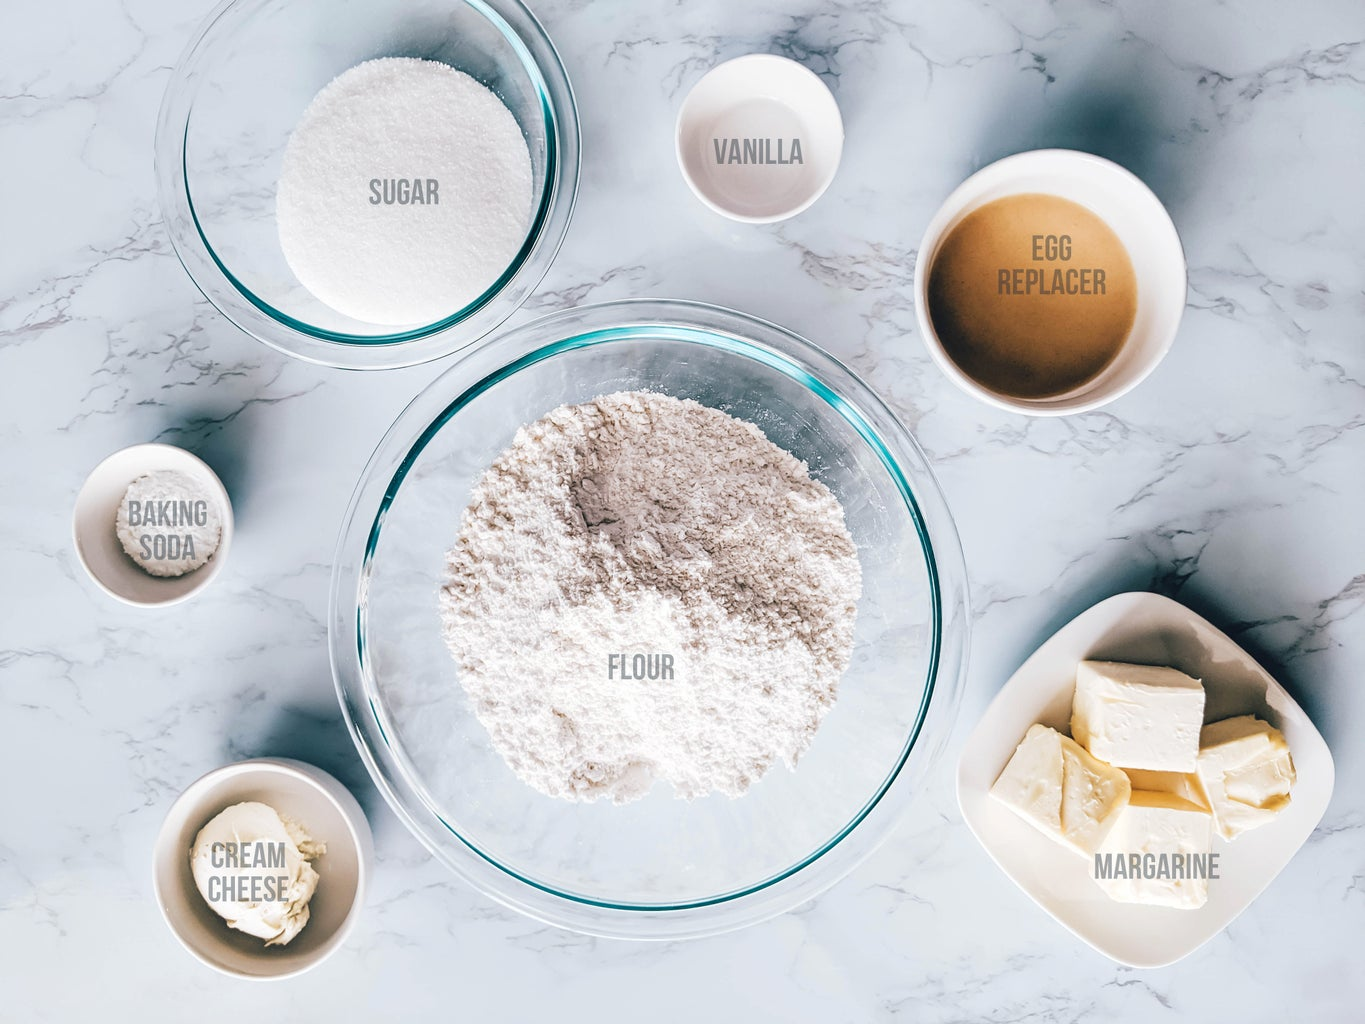 Gather Your Baking Ingredients and Tools